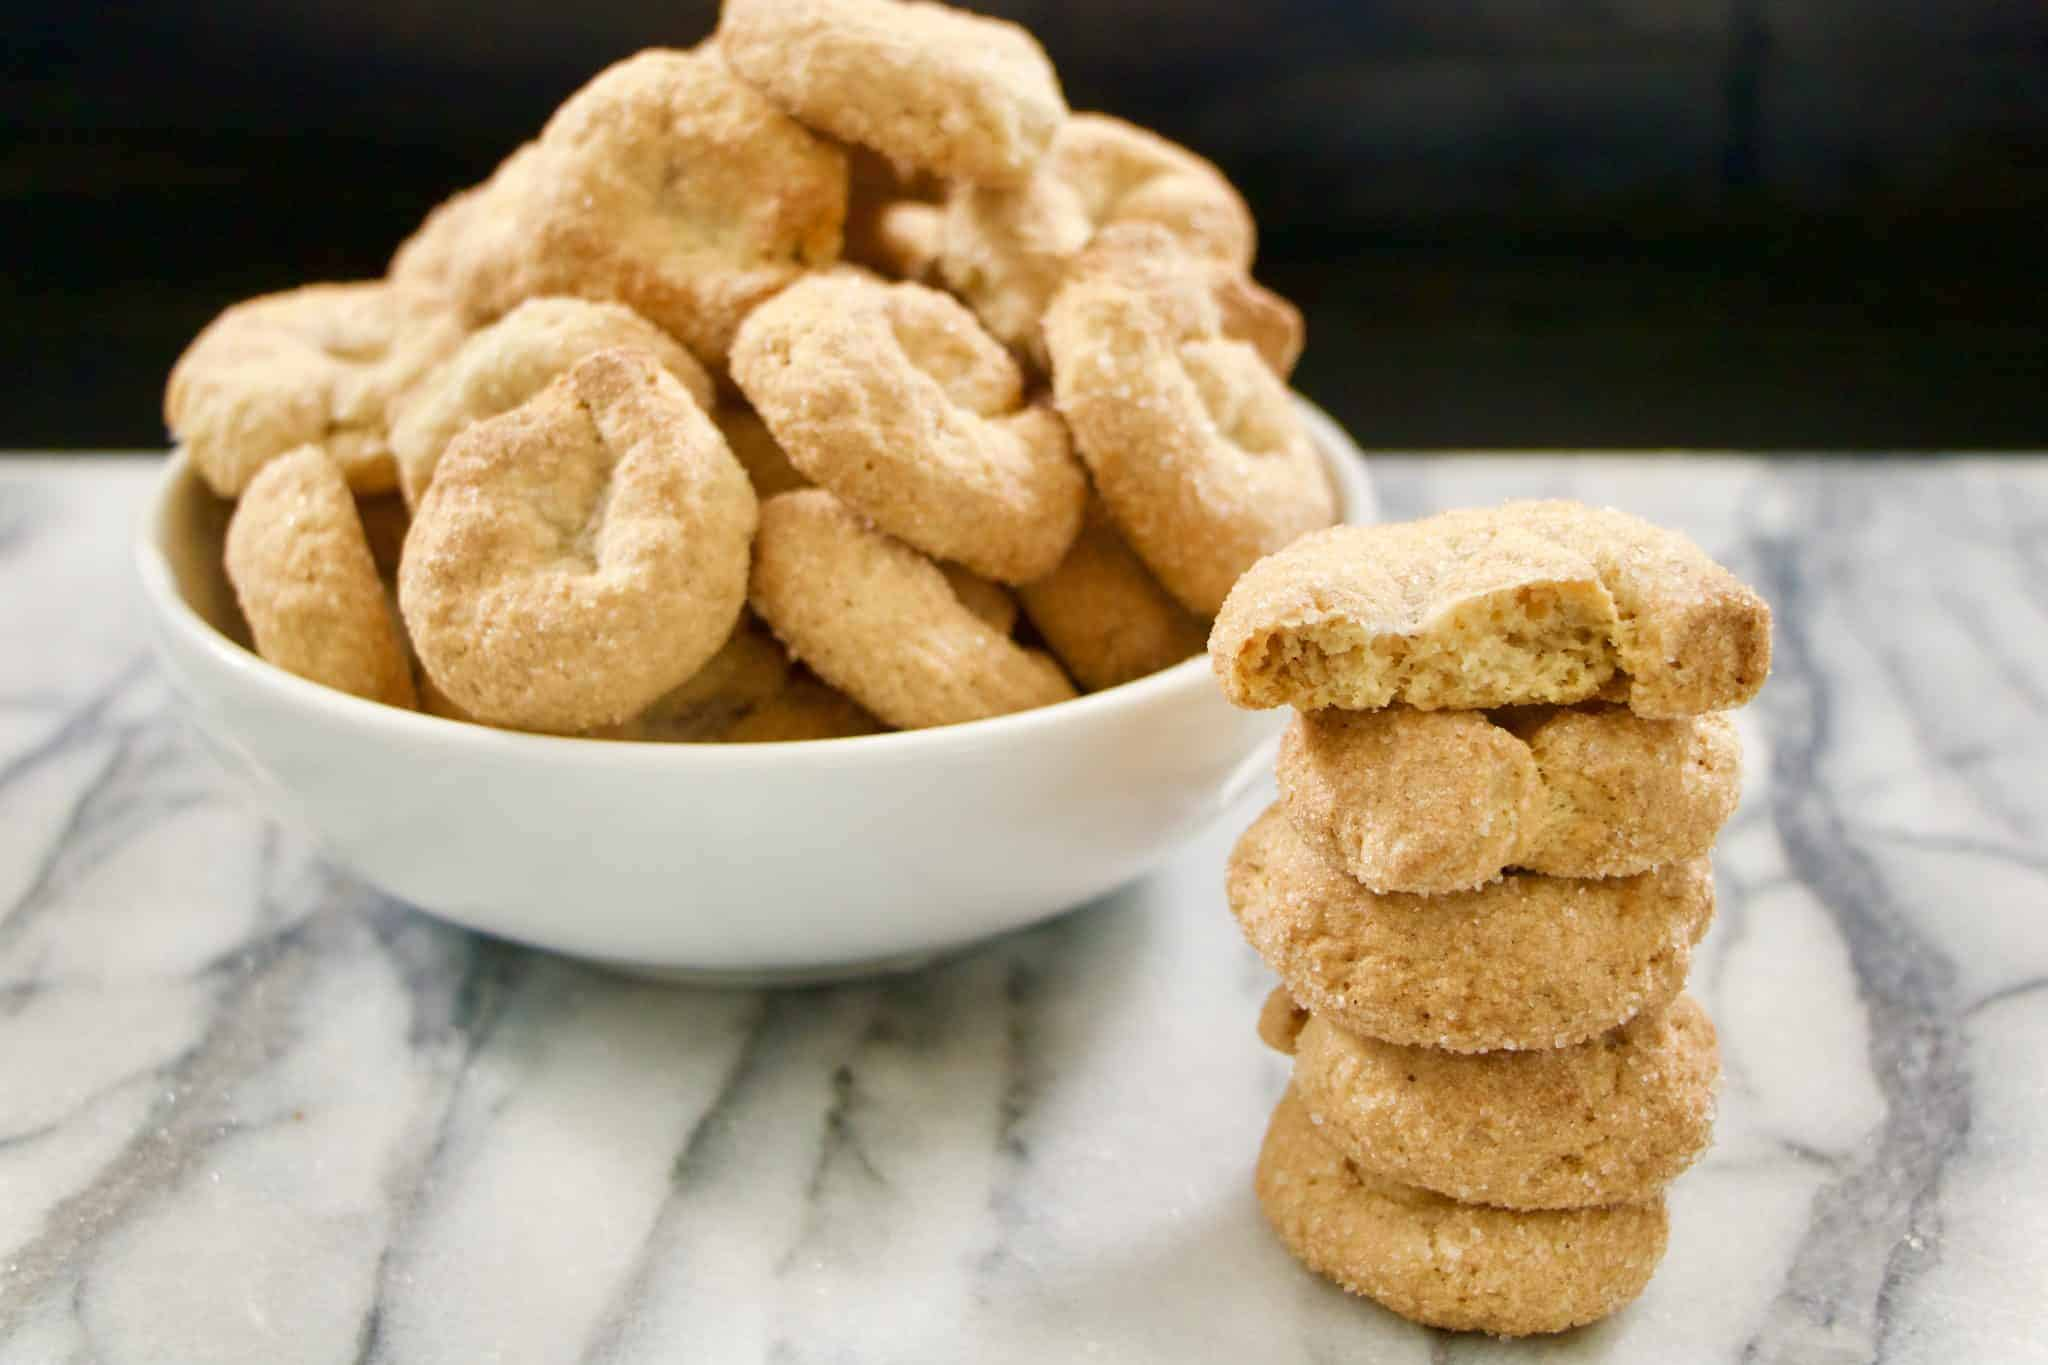 image of the aniseed cookies